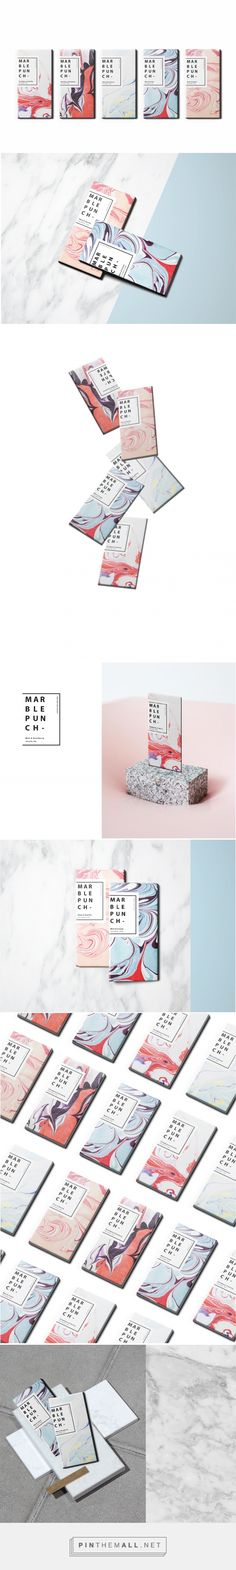 MarblePunch Chocolate Bar (Student Project) - Packaging of the World - Creative Package Design Gallery - http://www.packagingoftheworld.com/2017/05/marblepunch-chocolate-bar-student.html